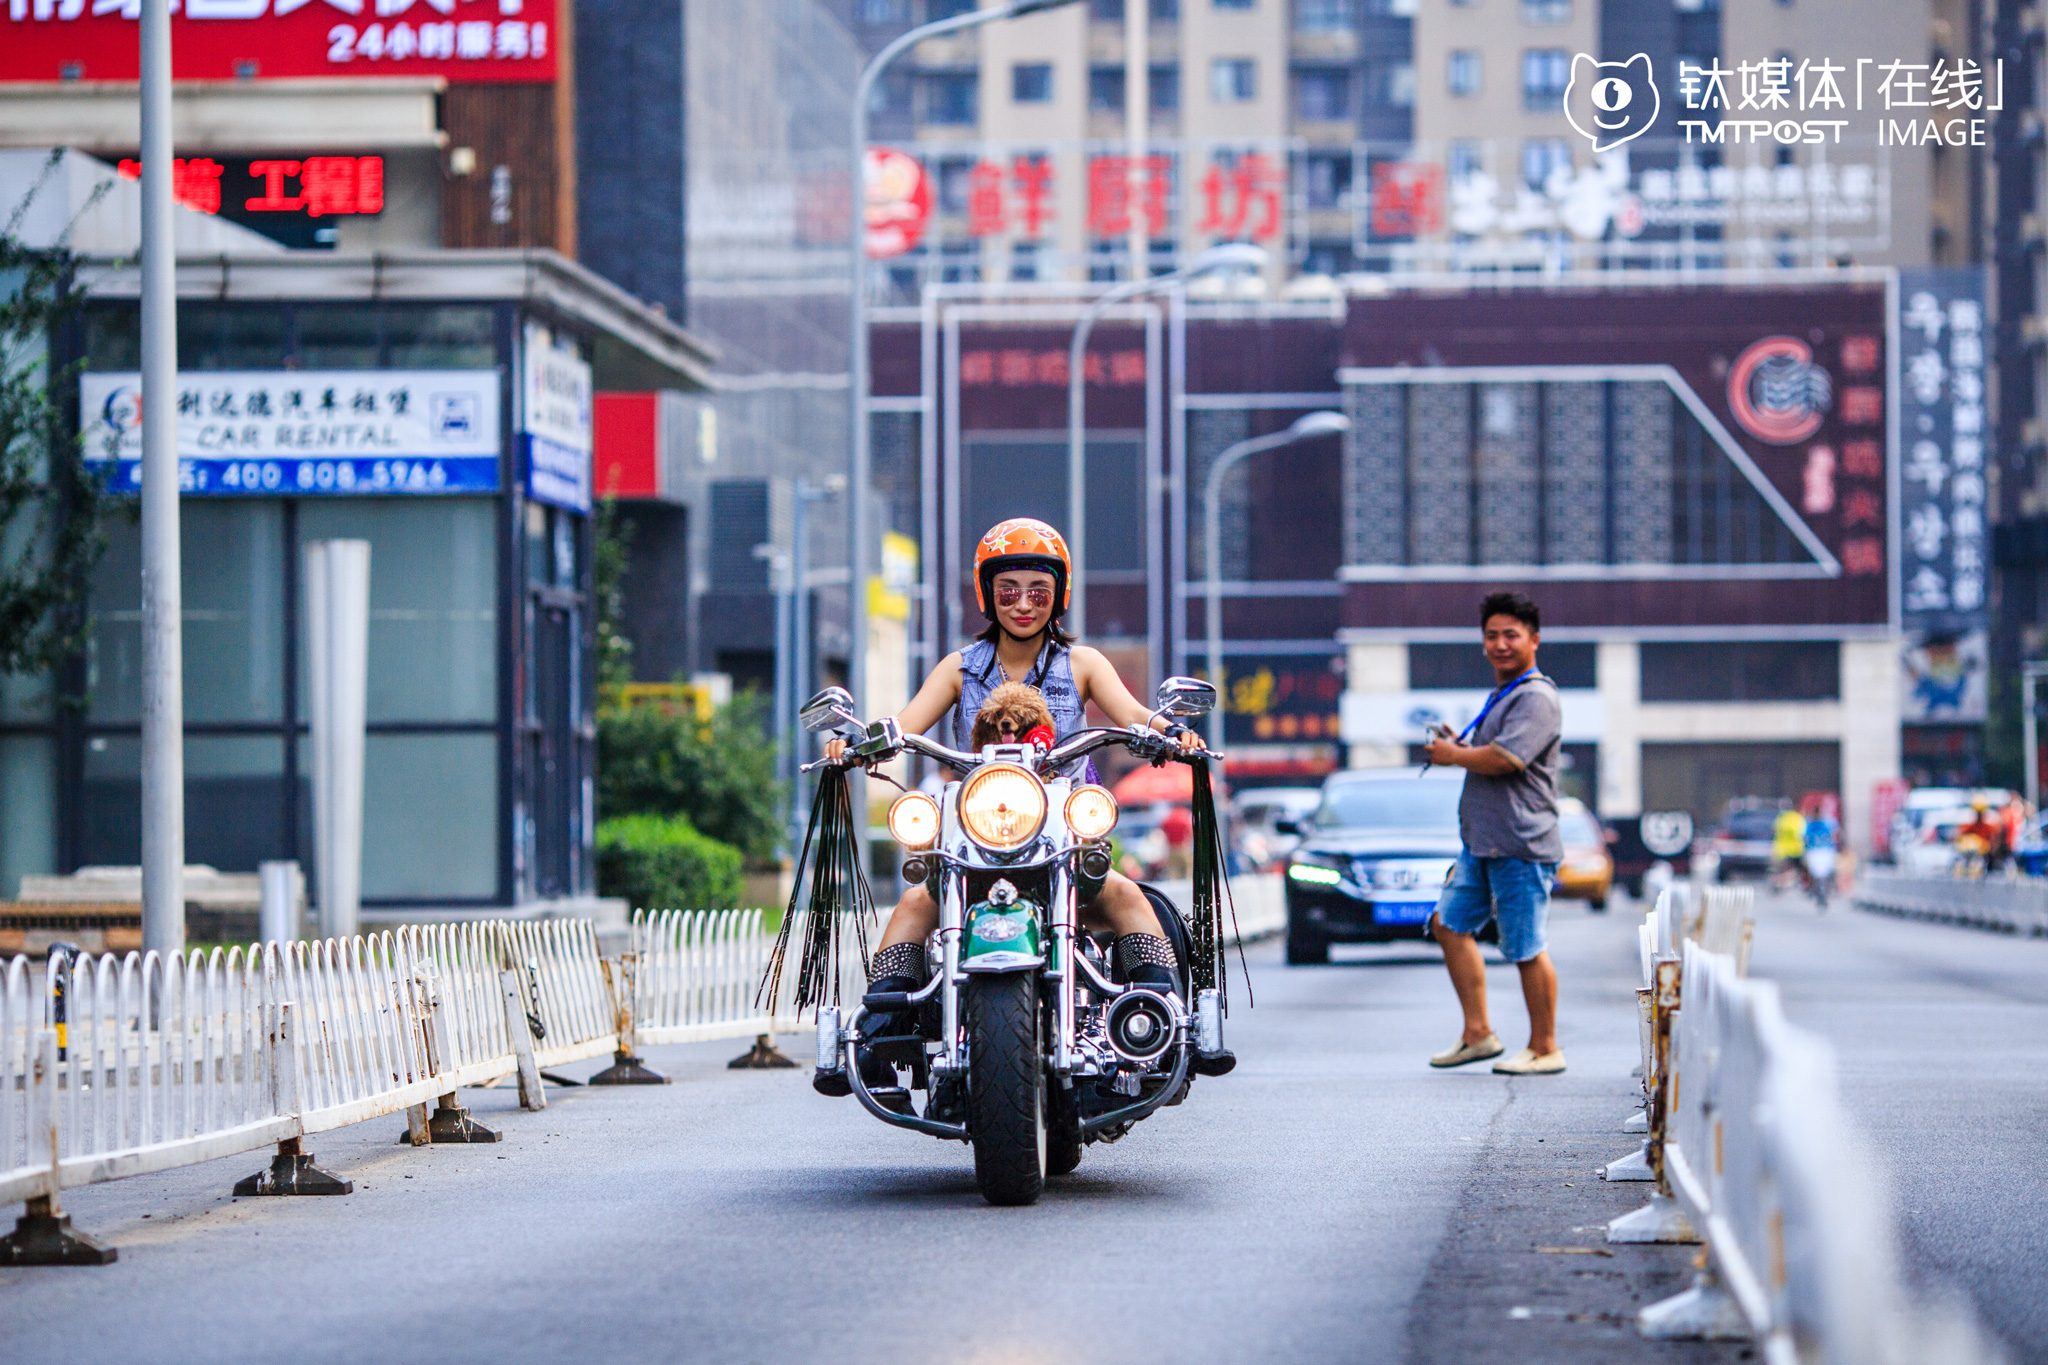 """Yan Han, owner of an interior design studio, is also founder of female Harley motorcycle riders club """"Top Riders"""". She loves Harley motorcycles and bought her first Harley (Harley 883L) four years ago at the price of 300,000 yuan. Her second Harley is modified Softtail Deluxe and cost her 500,000 yuan. """"It's the dream of every motorcycle rider to have a Harley. Different from ordinary motorcycles, Harley represents the pursuit for freedom and happiness instead of pure speed. I travelled on Harley for at least 20,000 kilometers every year,"""" she said."""